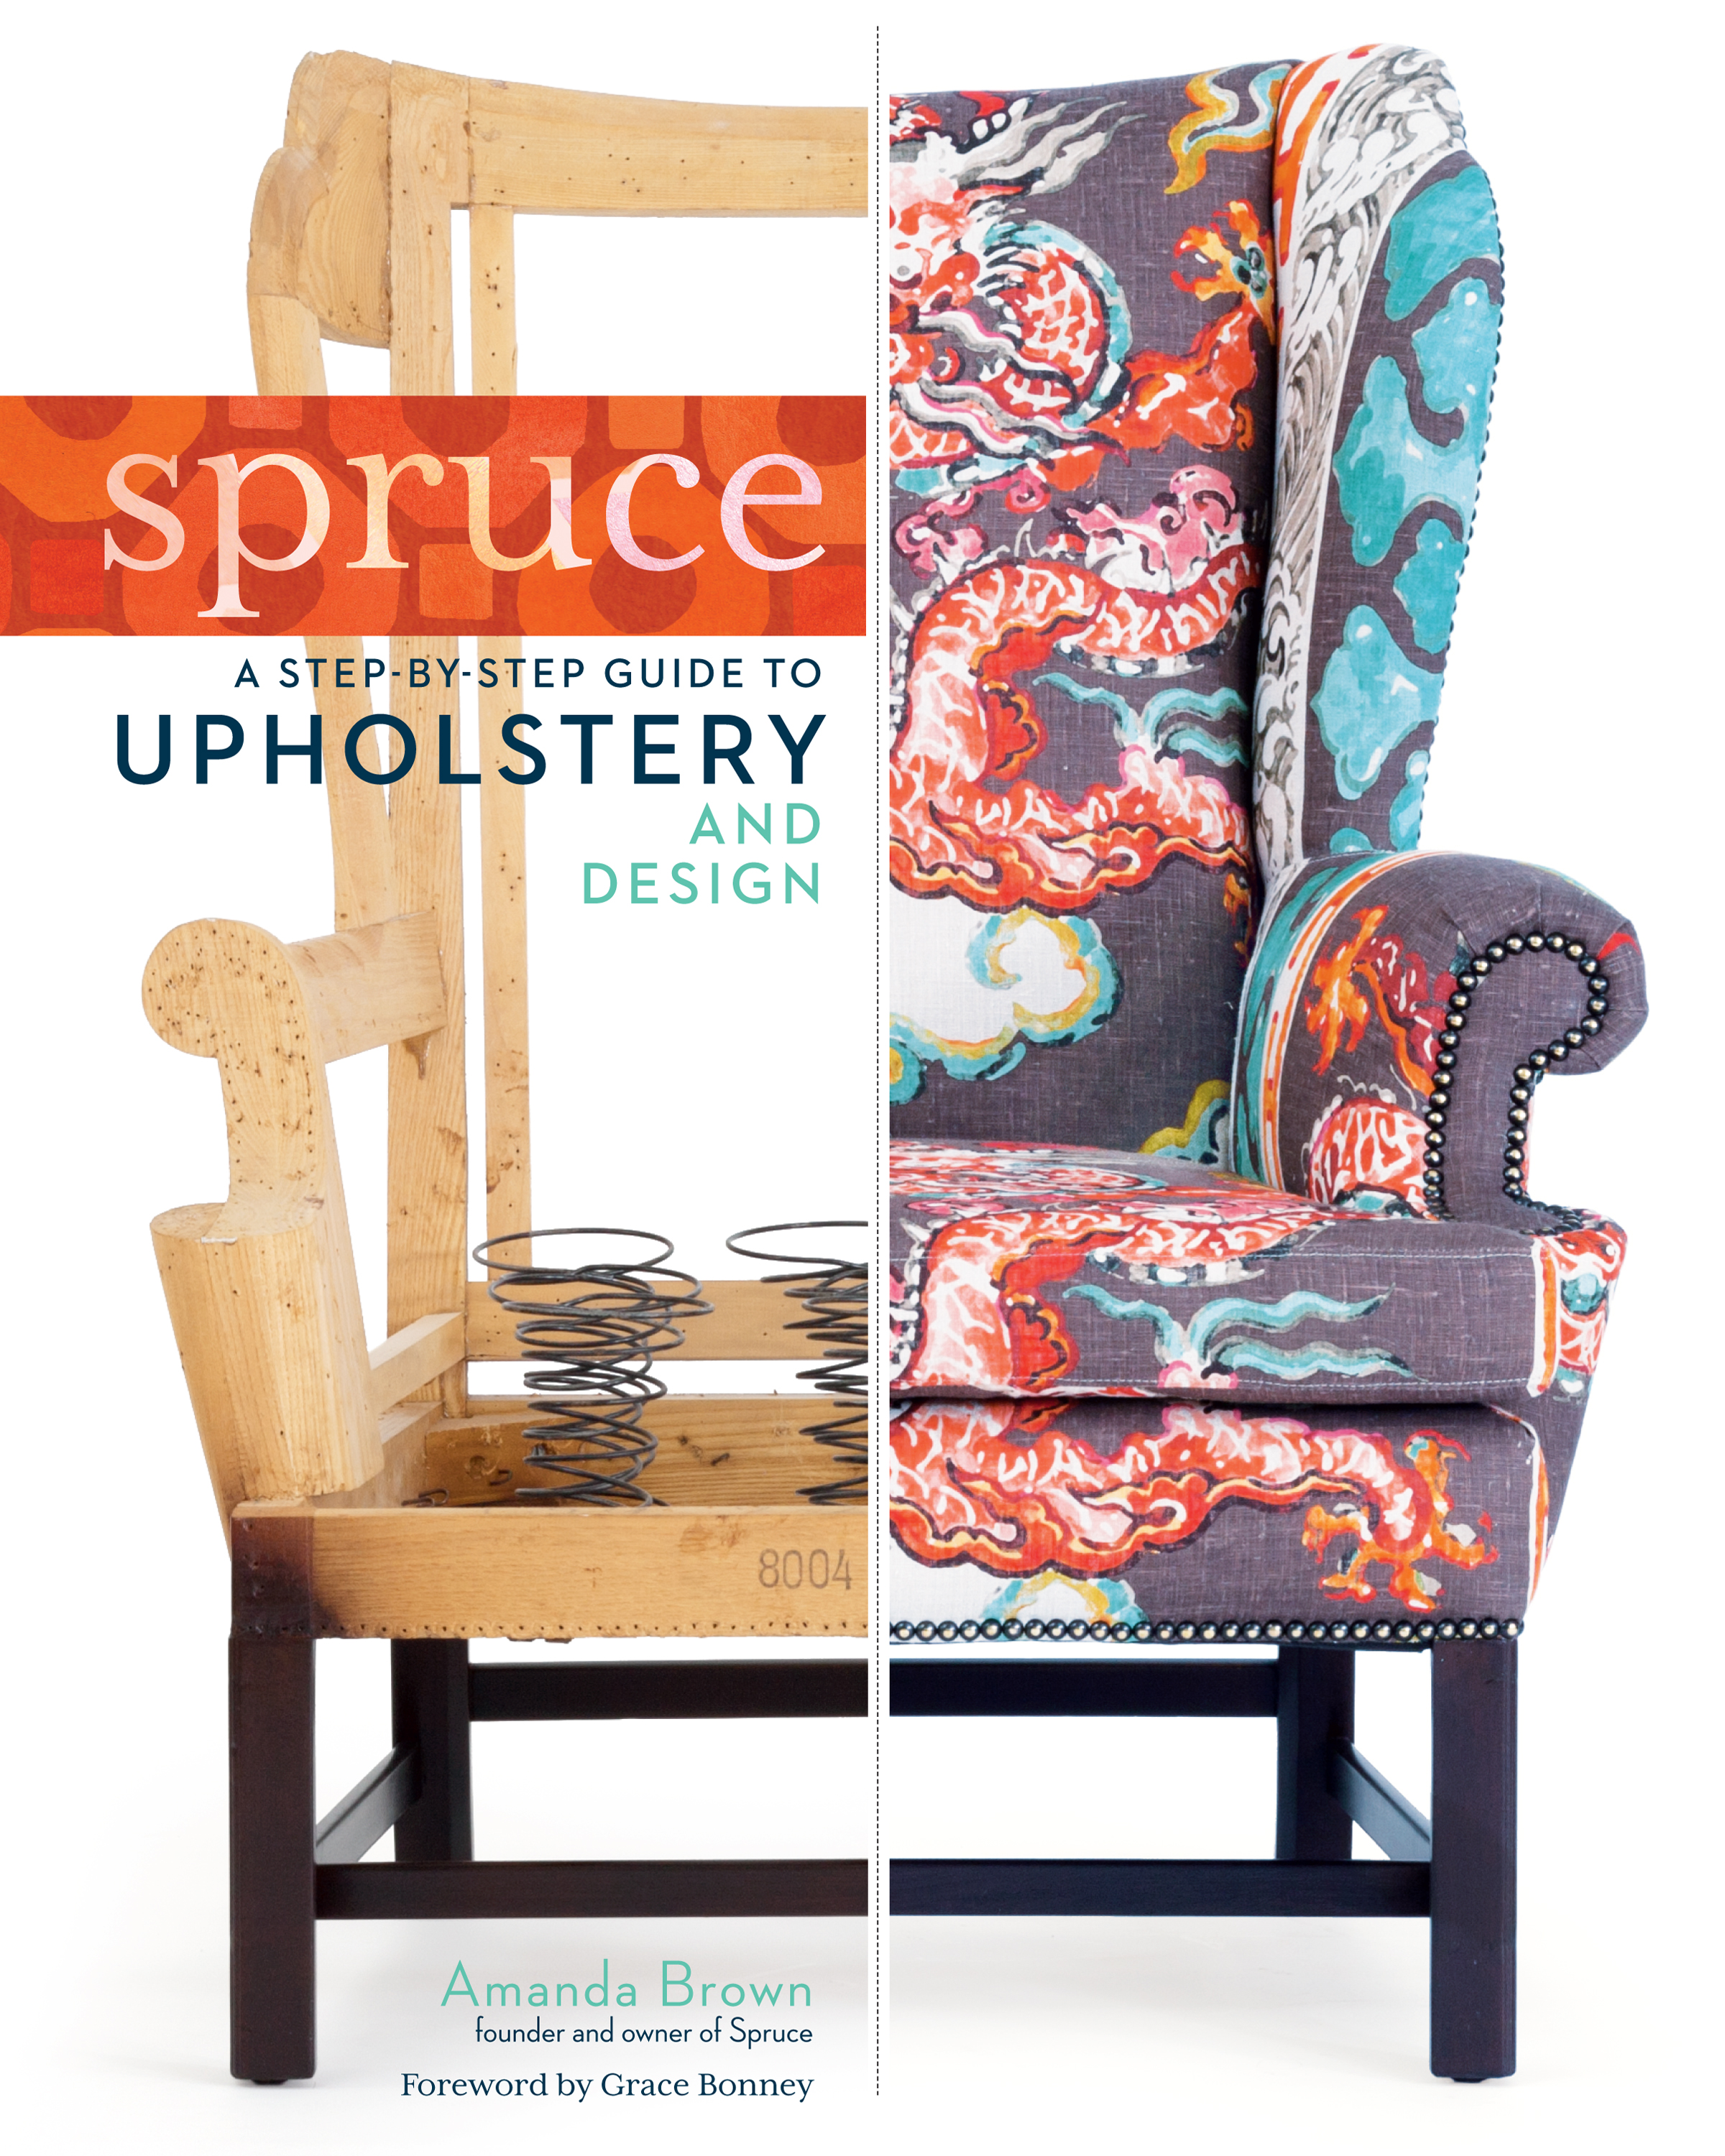 Spruce: A Step-by-Step Guide to Upholstery and Design  - Amanda Brown